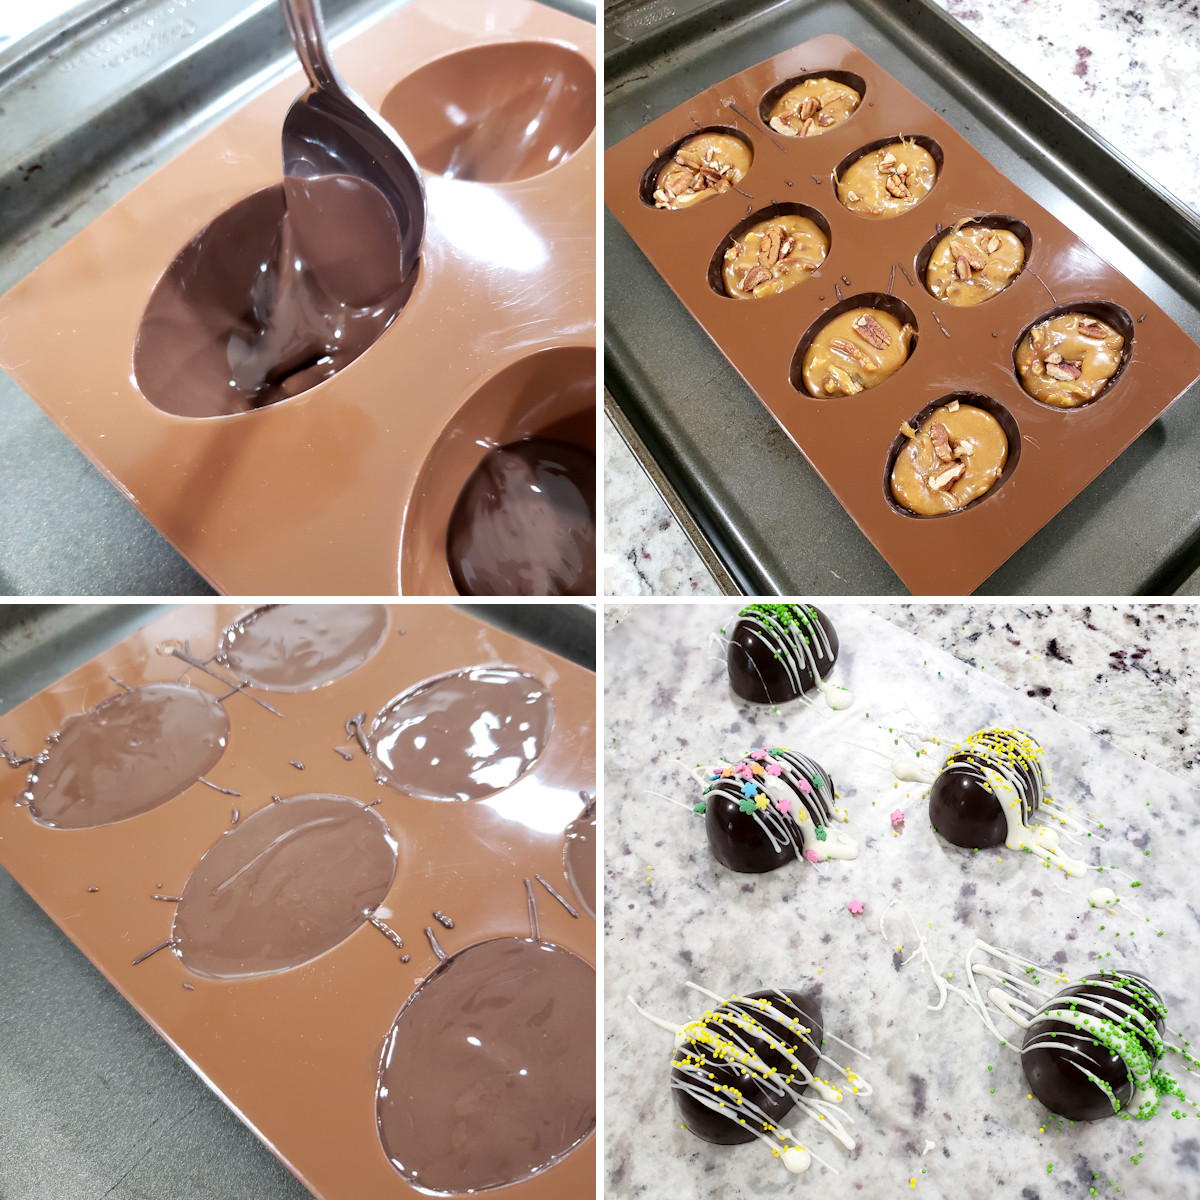 Making chocolate easter eggs in a candy mold.